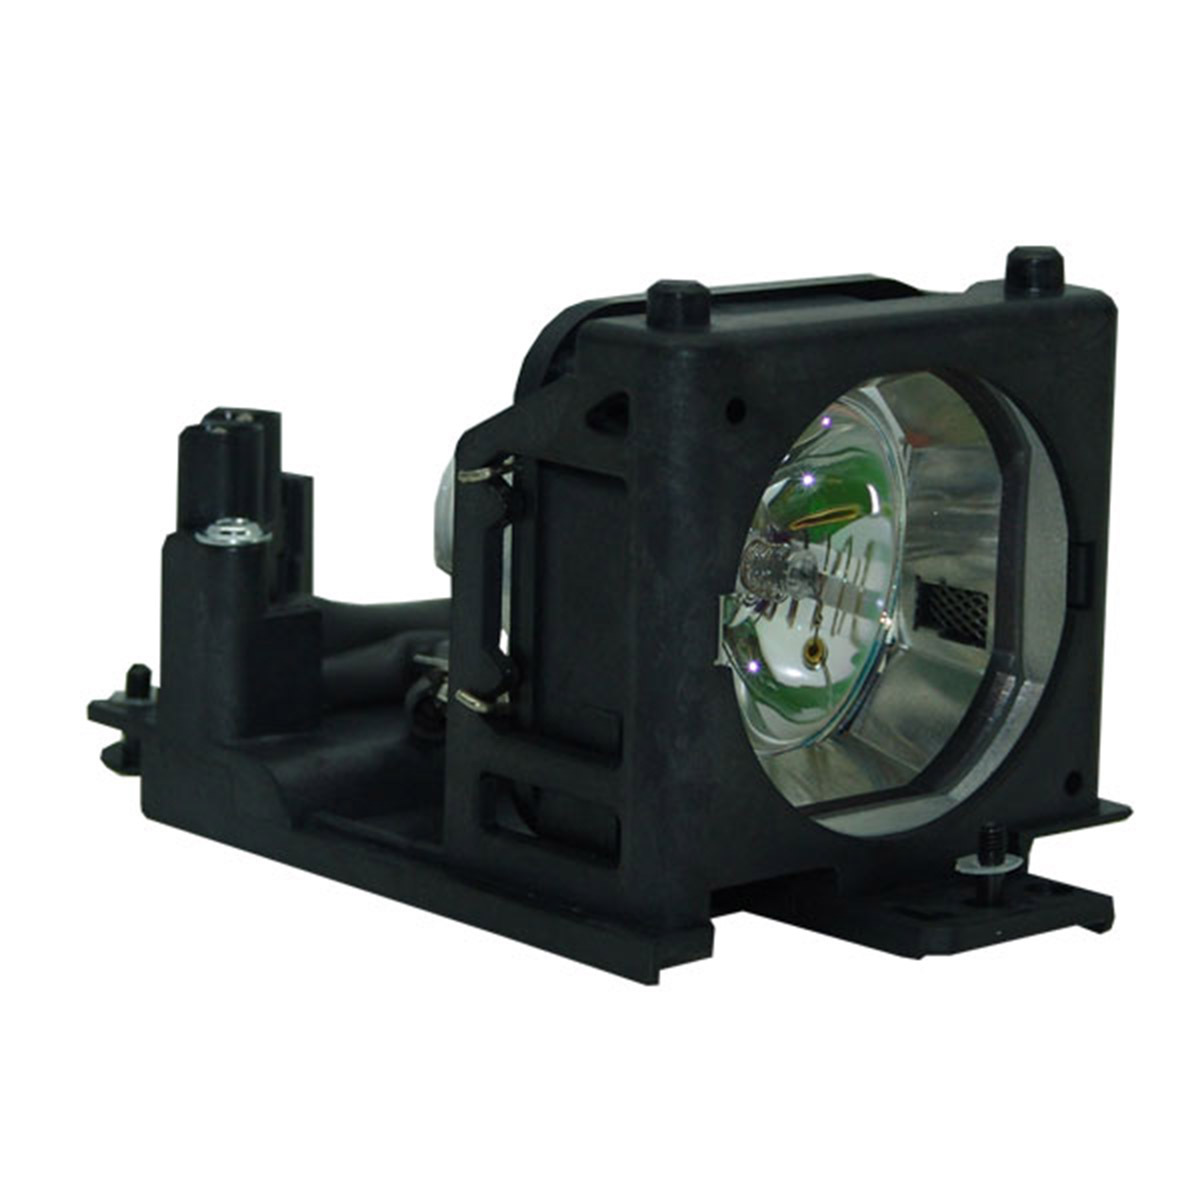 Primary image for Hitachi DT00707 Compatible Projector Lamp Module